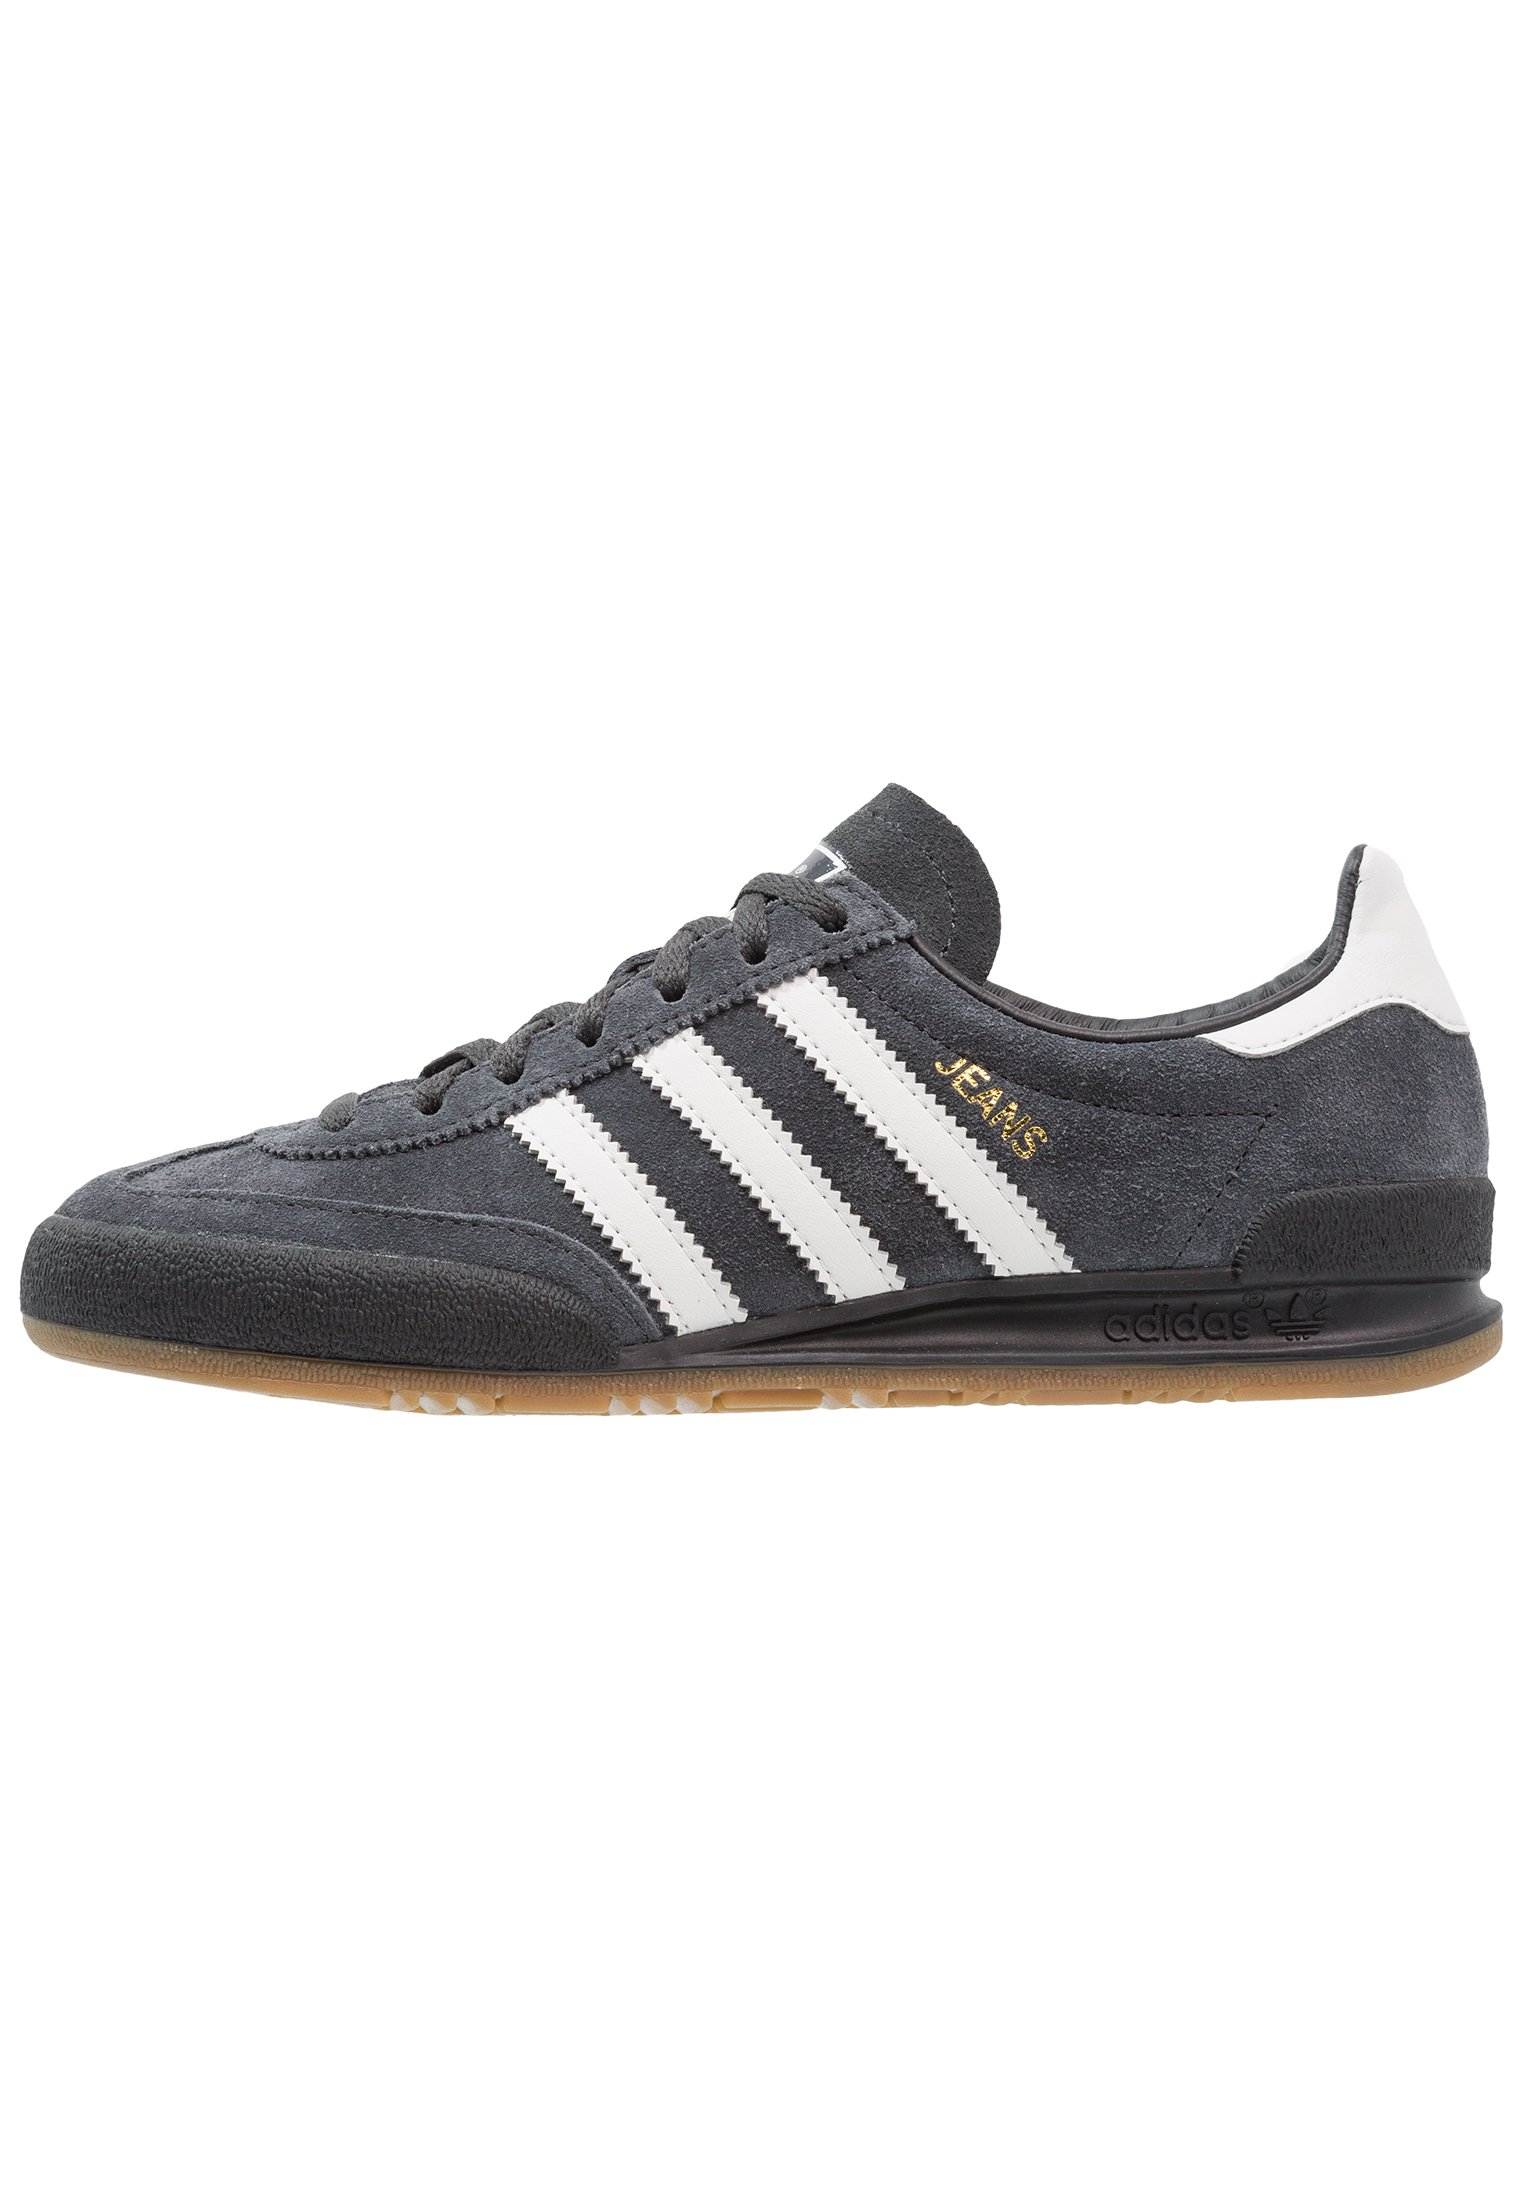 JEANS Trainers carbongrey onecore black